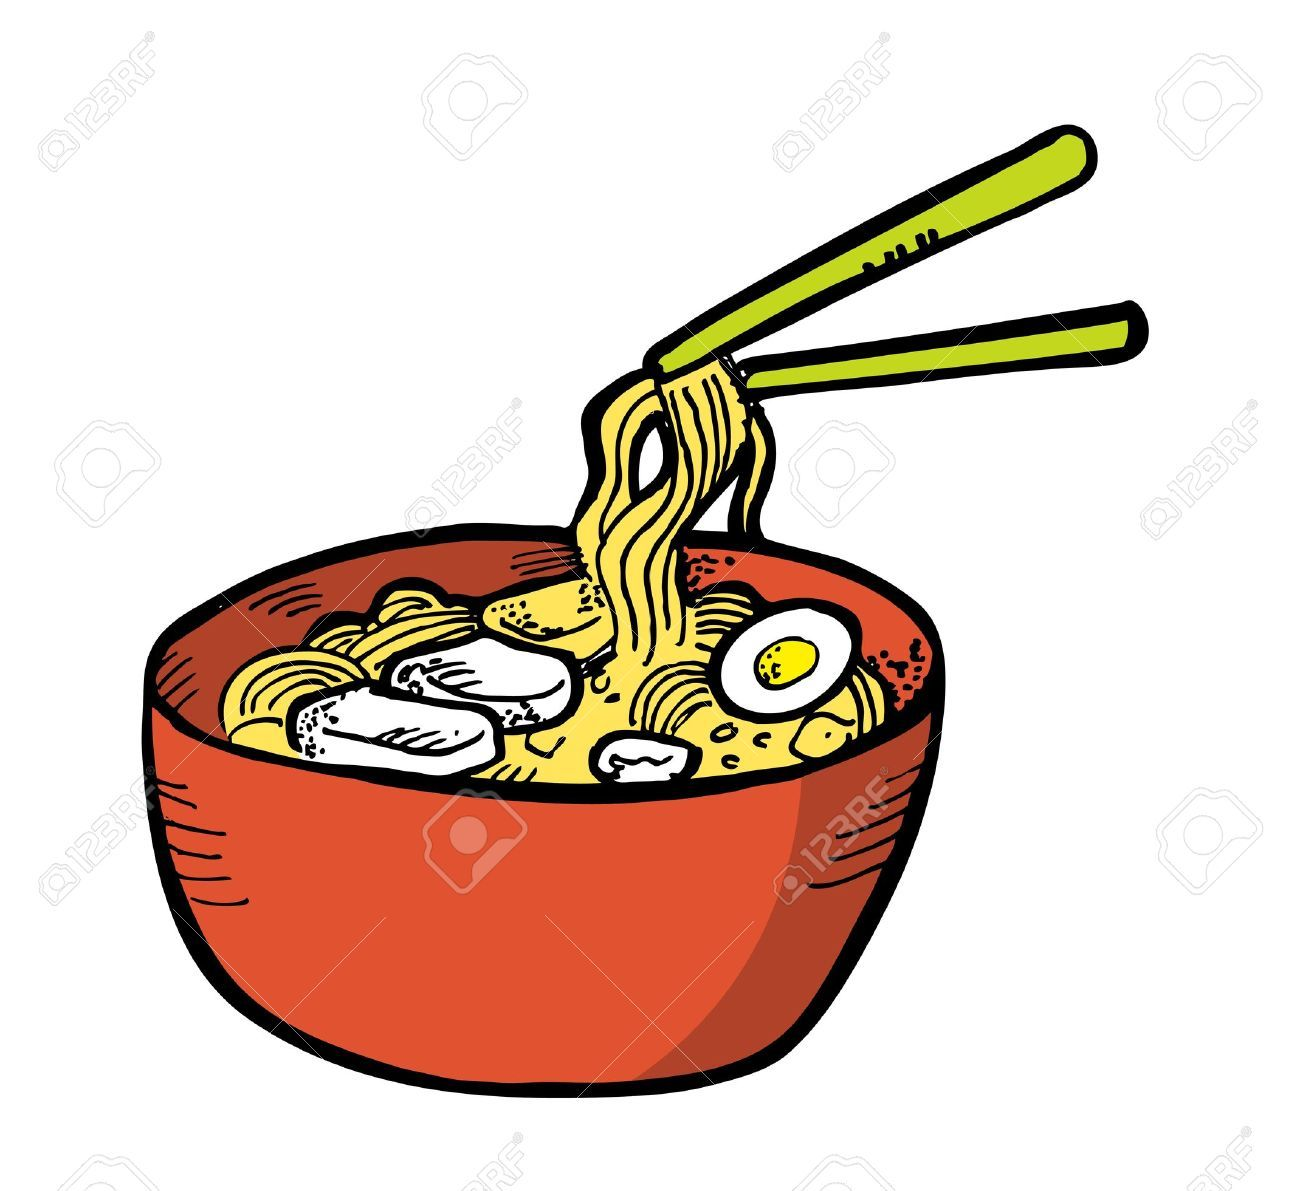 Noodles cartoon clipart graphic royalty free download Pin by 學欣 李 on Noodle in 2019 | Ramen, Noodles, Noodle soup graphic royalty free download